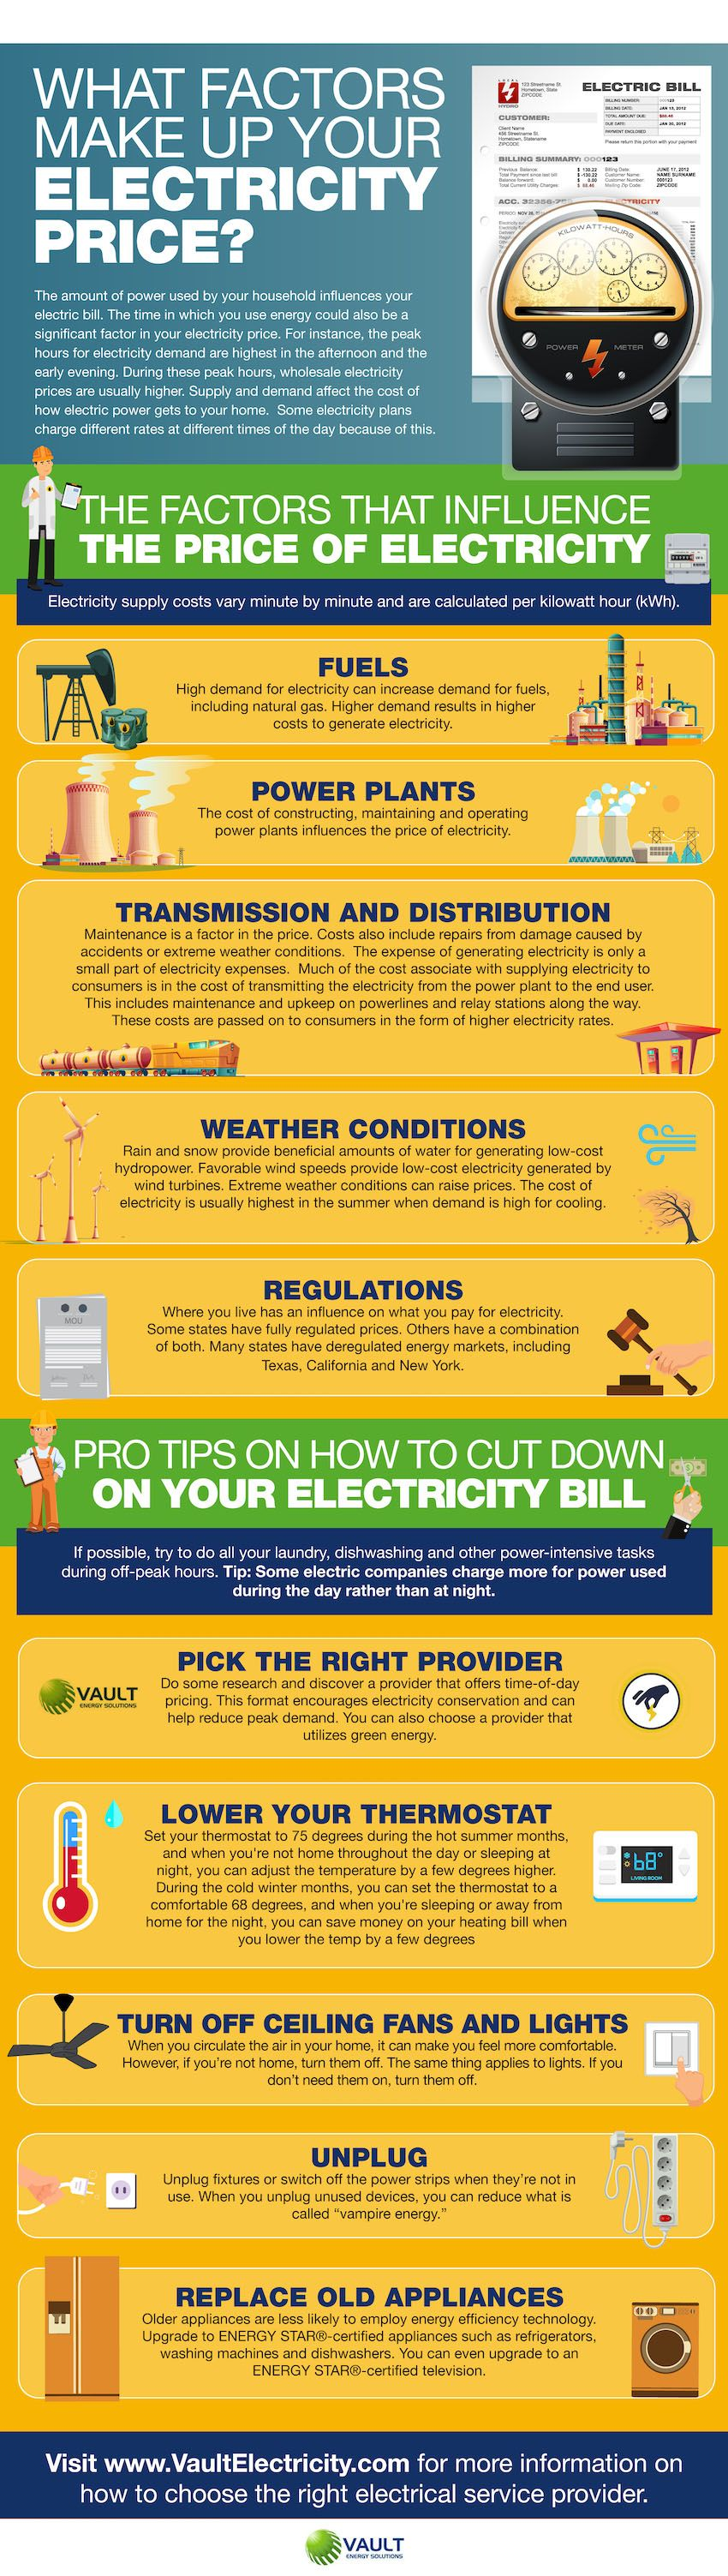 What Factors Make Up Your Electricity Price Electricity Prices Infographic How Are You Feeling